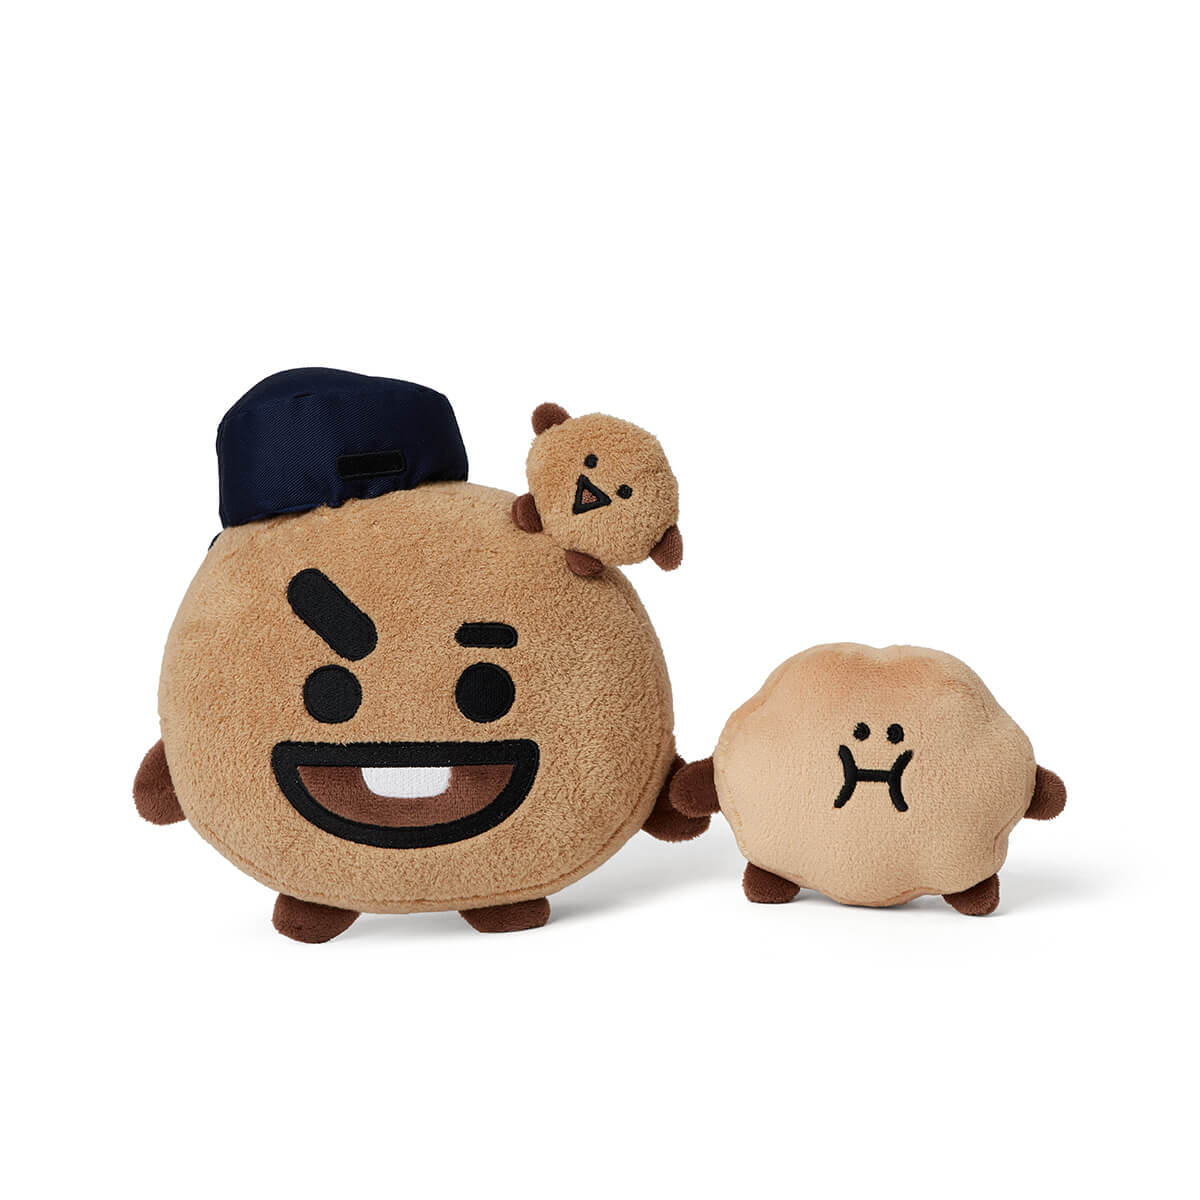 BT21 SHOOKY School Look Standing Doll